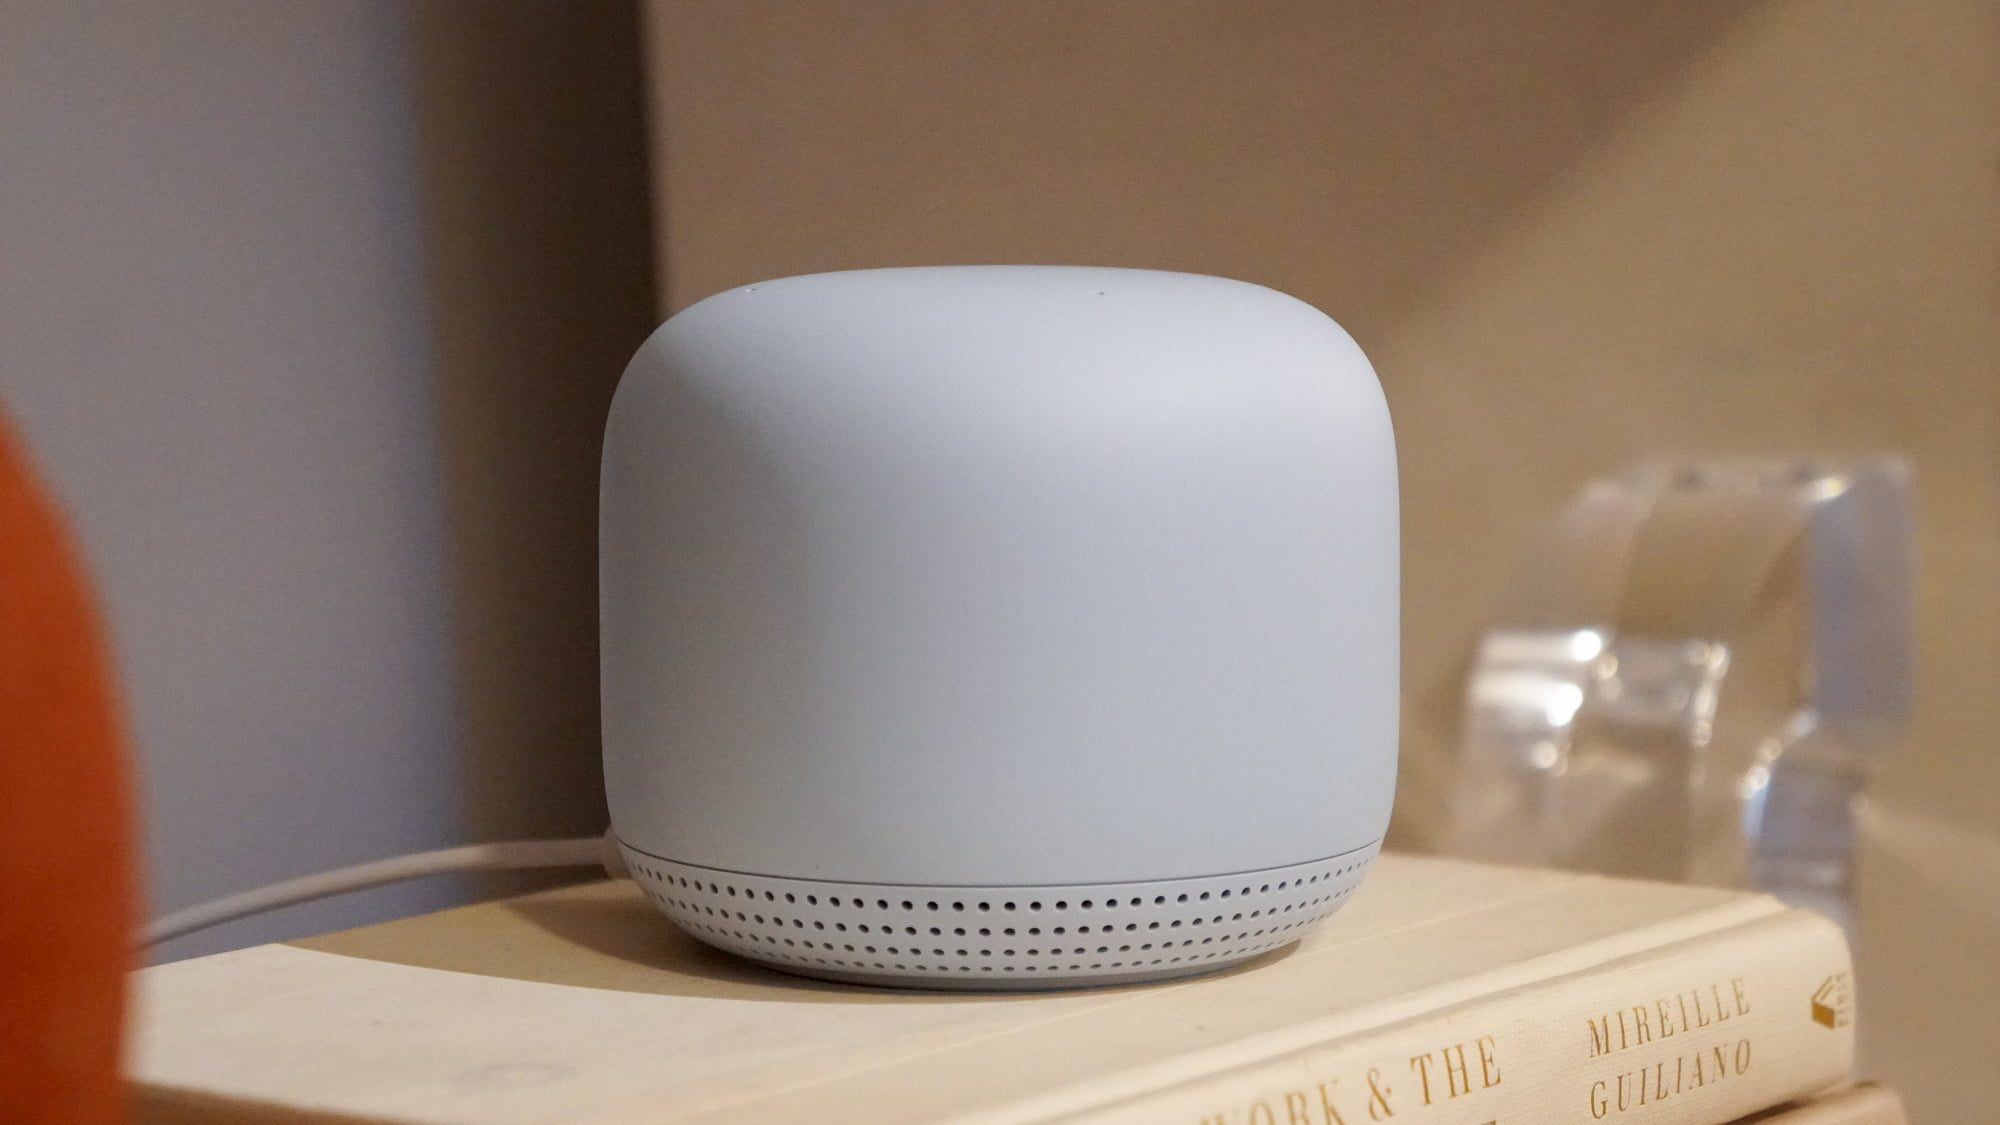 This feature could make Google's Nest Wifi the best router for Stadia game streaming